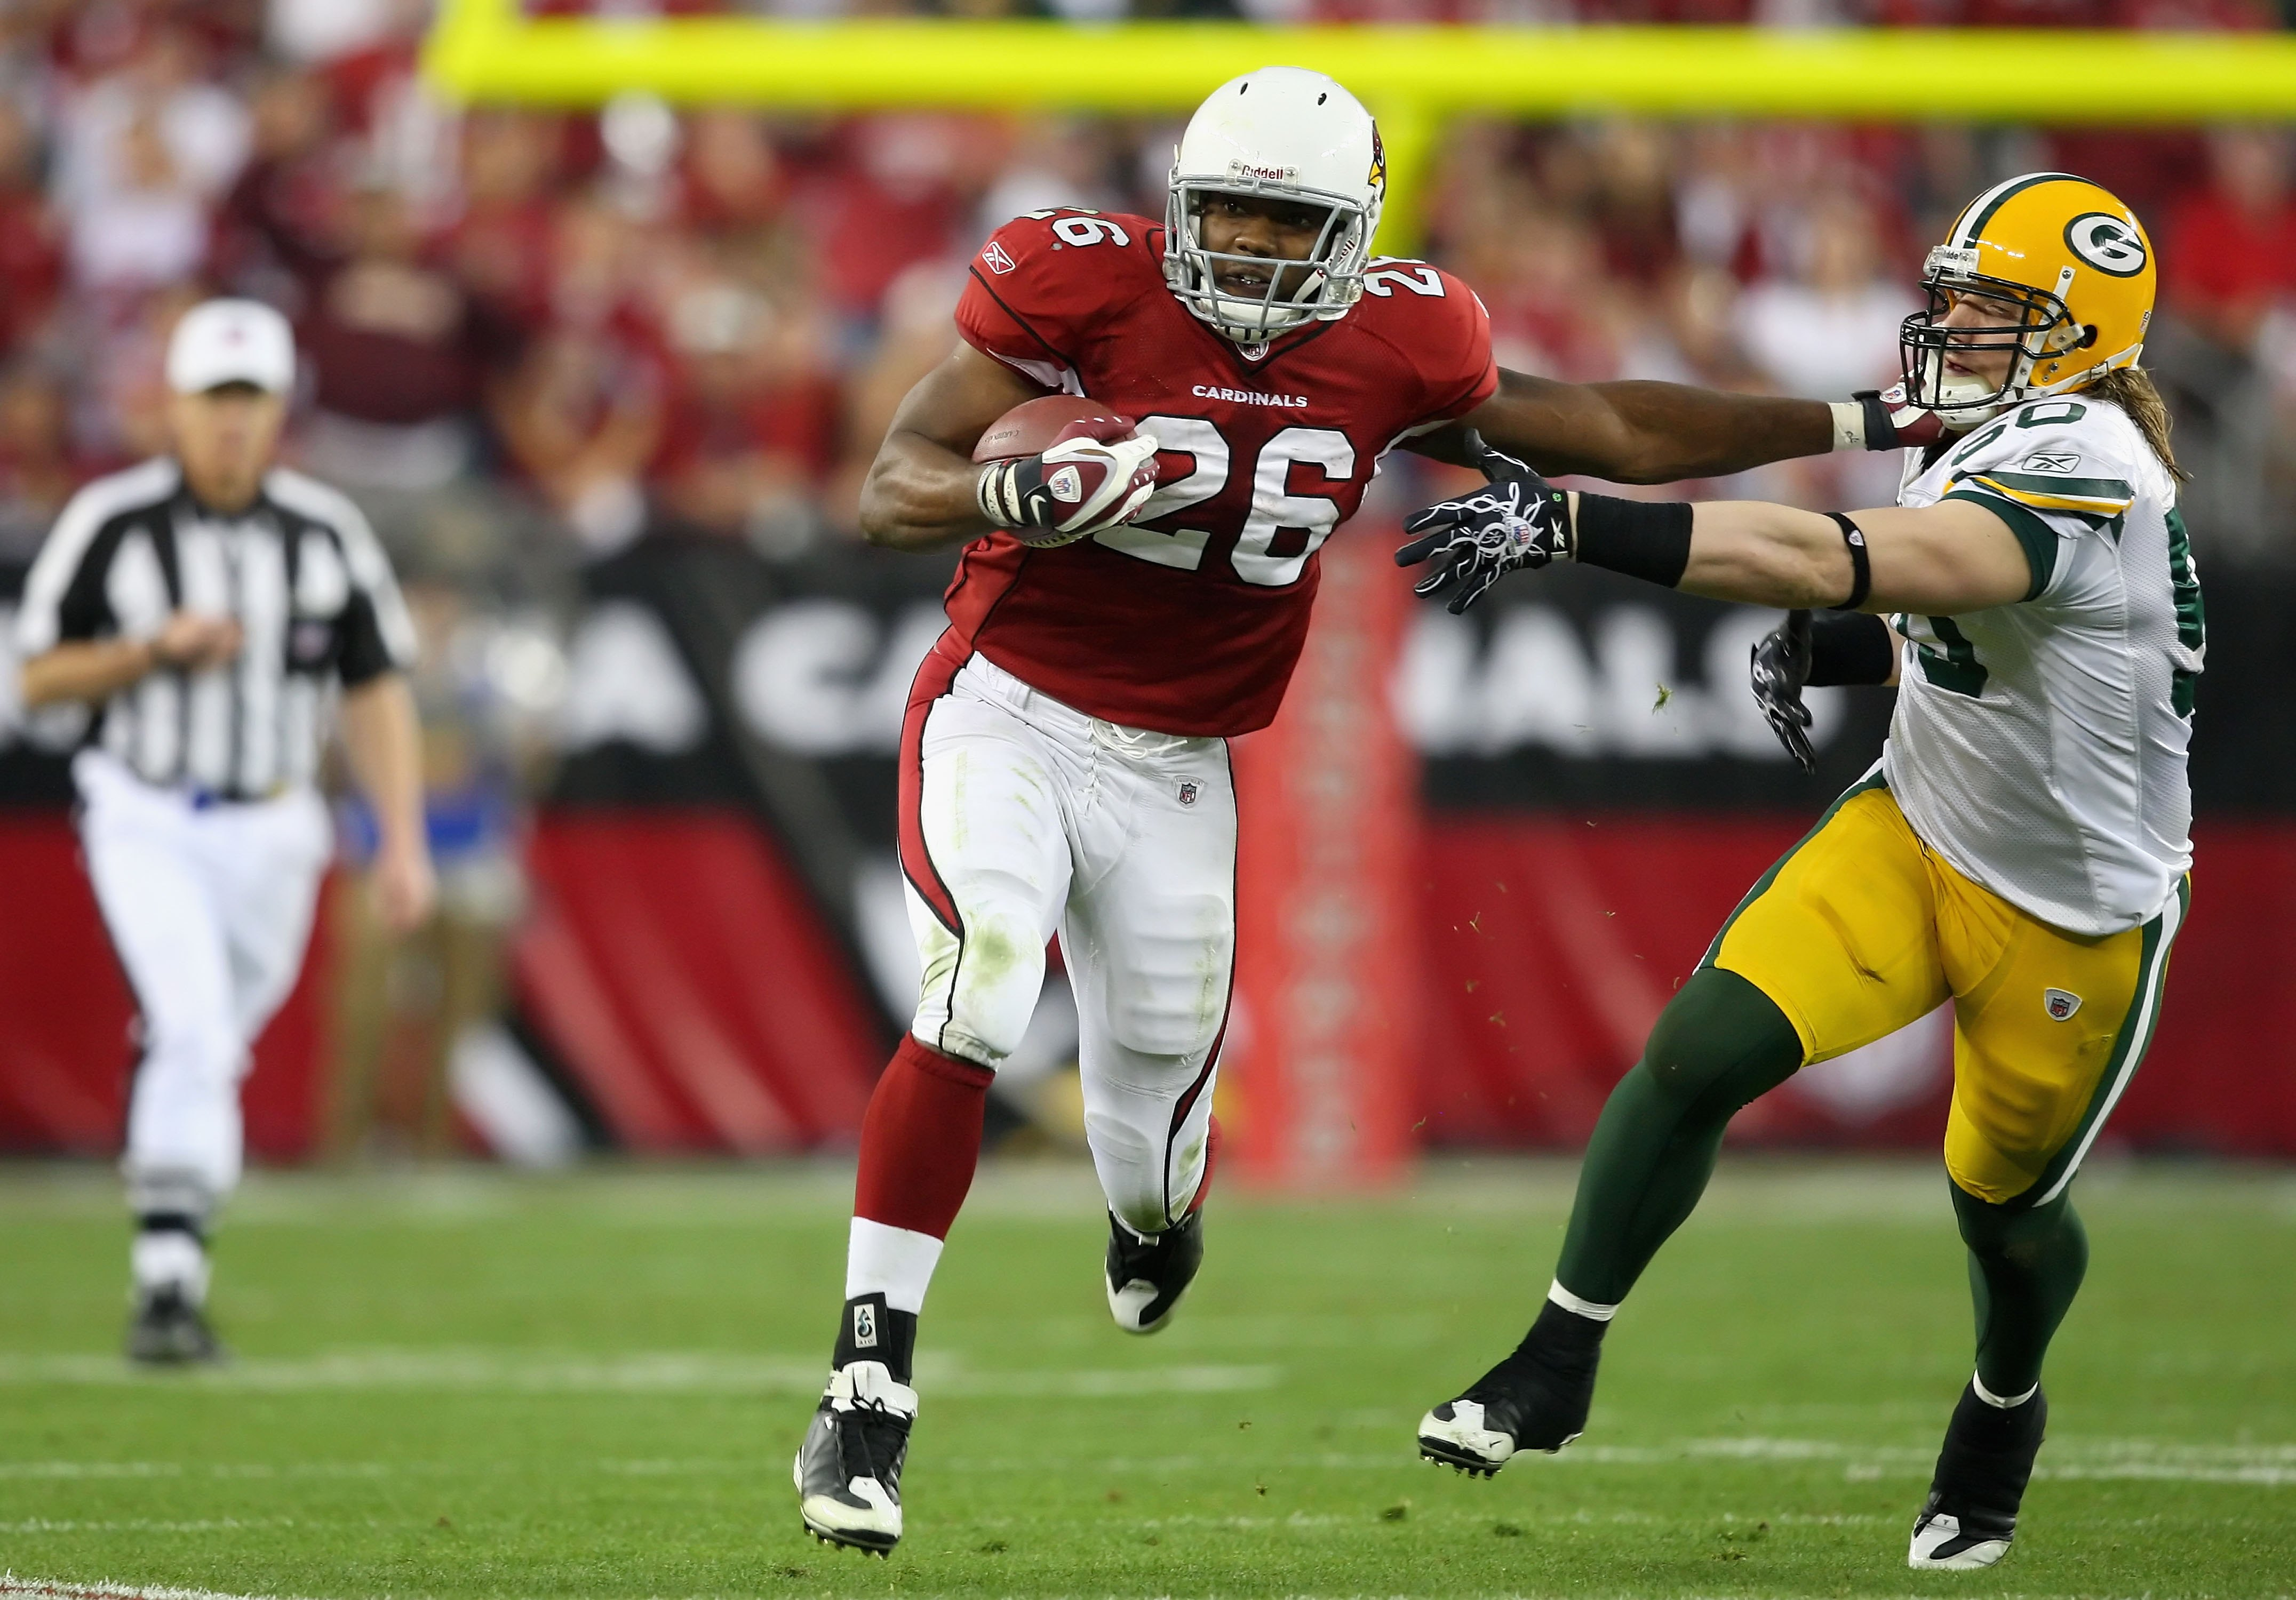 GLENDALE, AZ - JANUARY 10:  Runningback Beanie Wells #26 of the Arizona Cardinals rushes the football during the 2010 NFC wild-card playoff game against  the Green Bay Packers at the Universtity of Phoenix Stadium on January 10, 2010 in Glendale, Arizona.